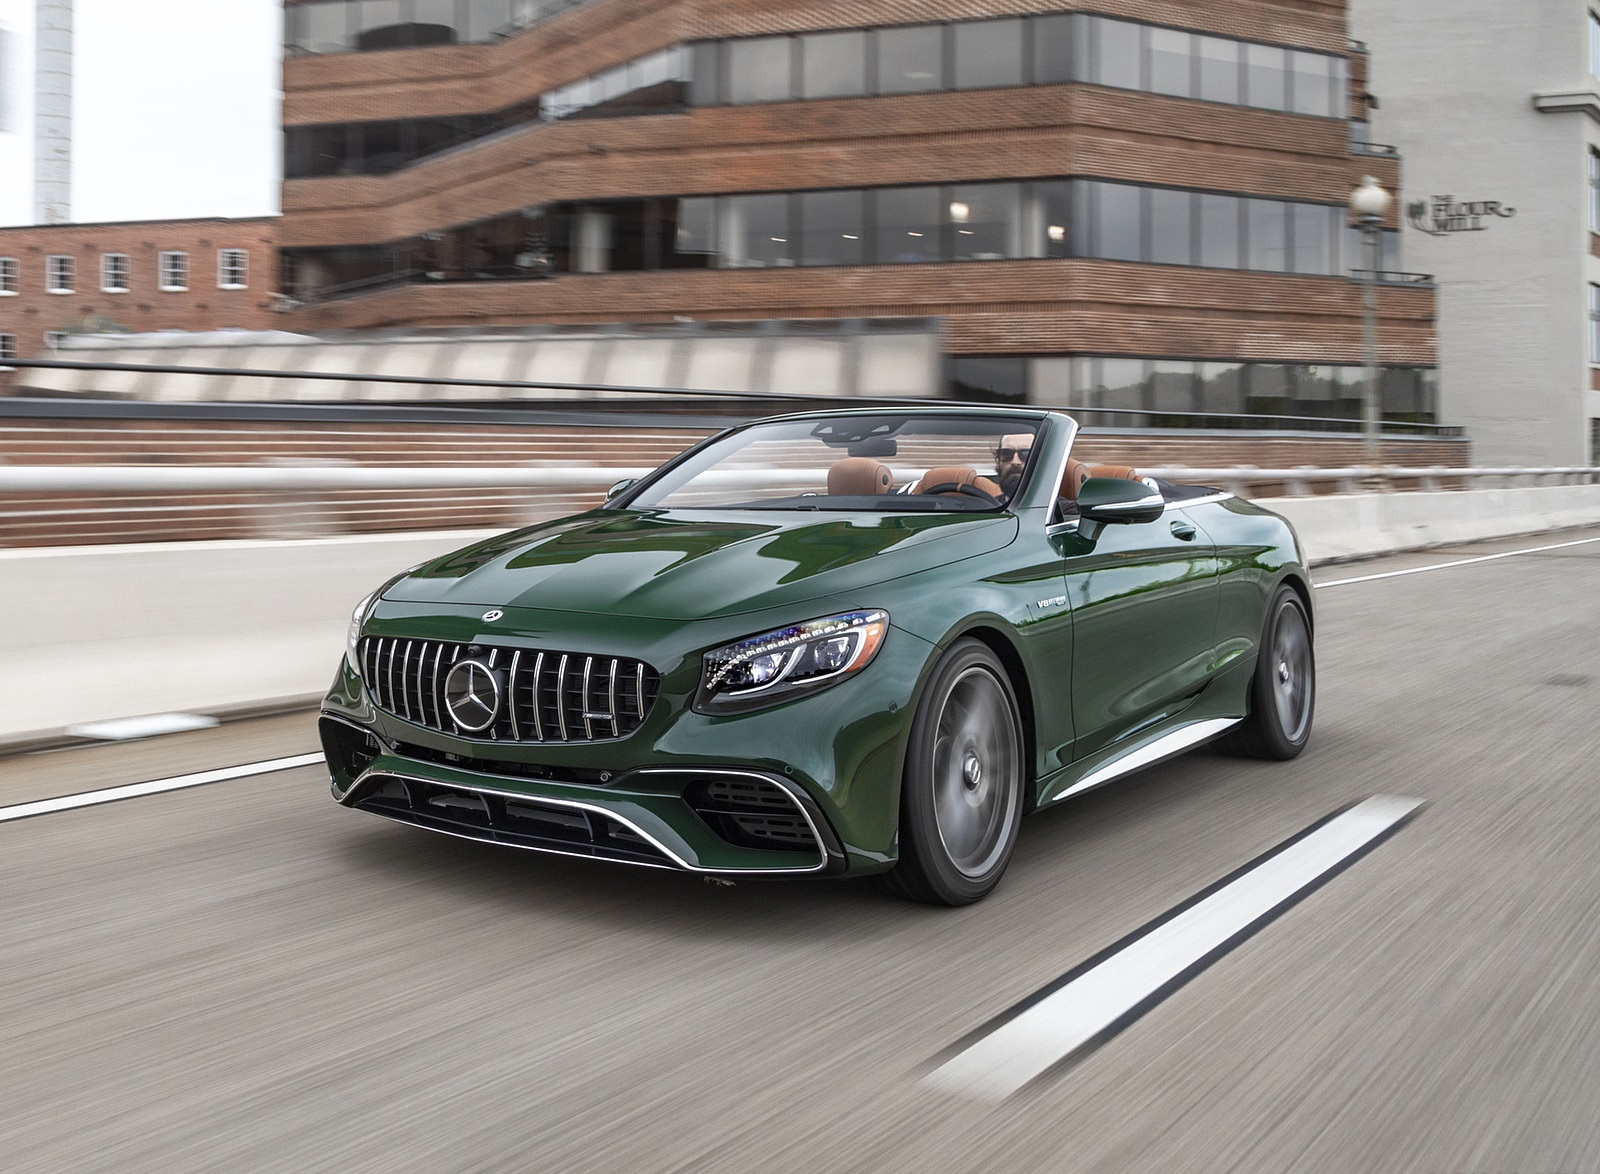 2020 Mercedes-AMG S 63 Cabriolet (US-Spec) Front Three-Quarter Wallpapers (3)